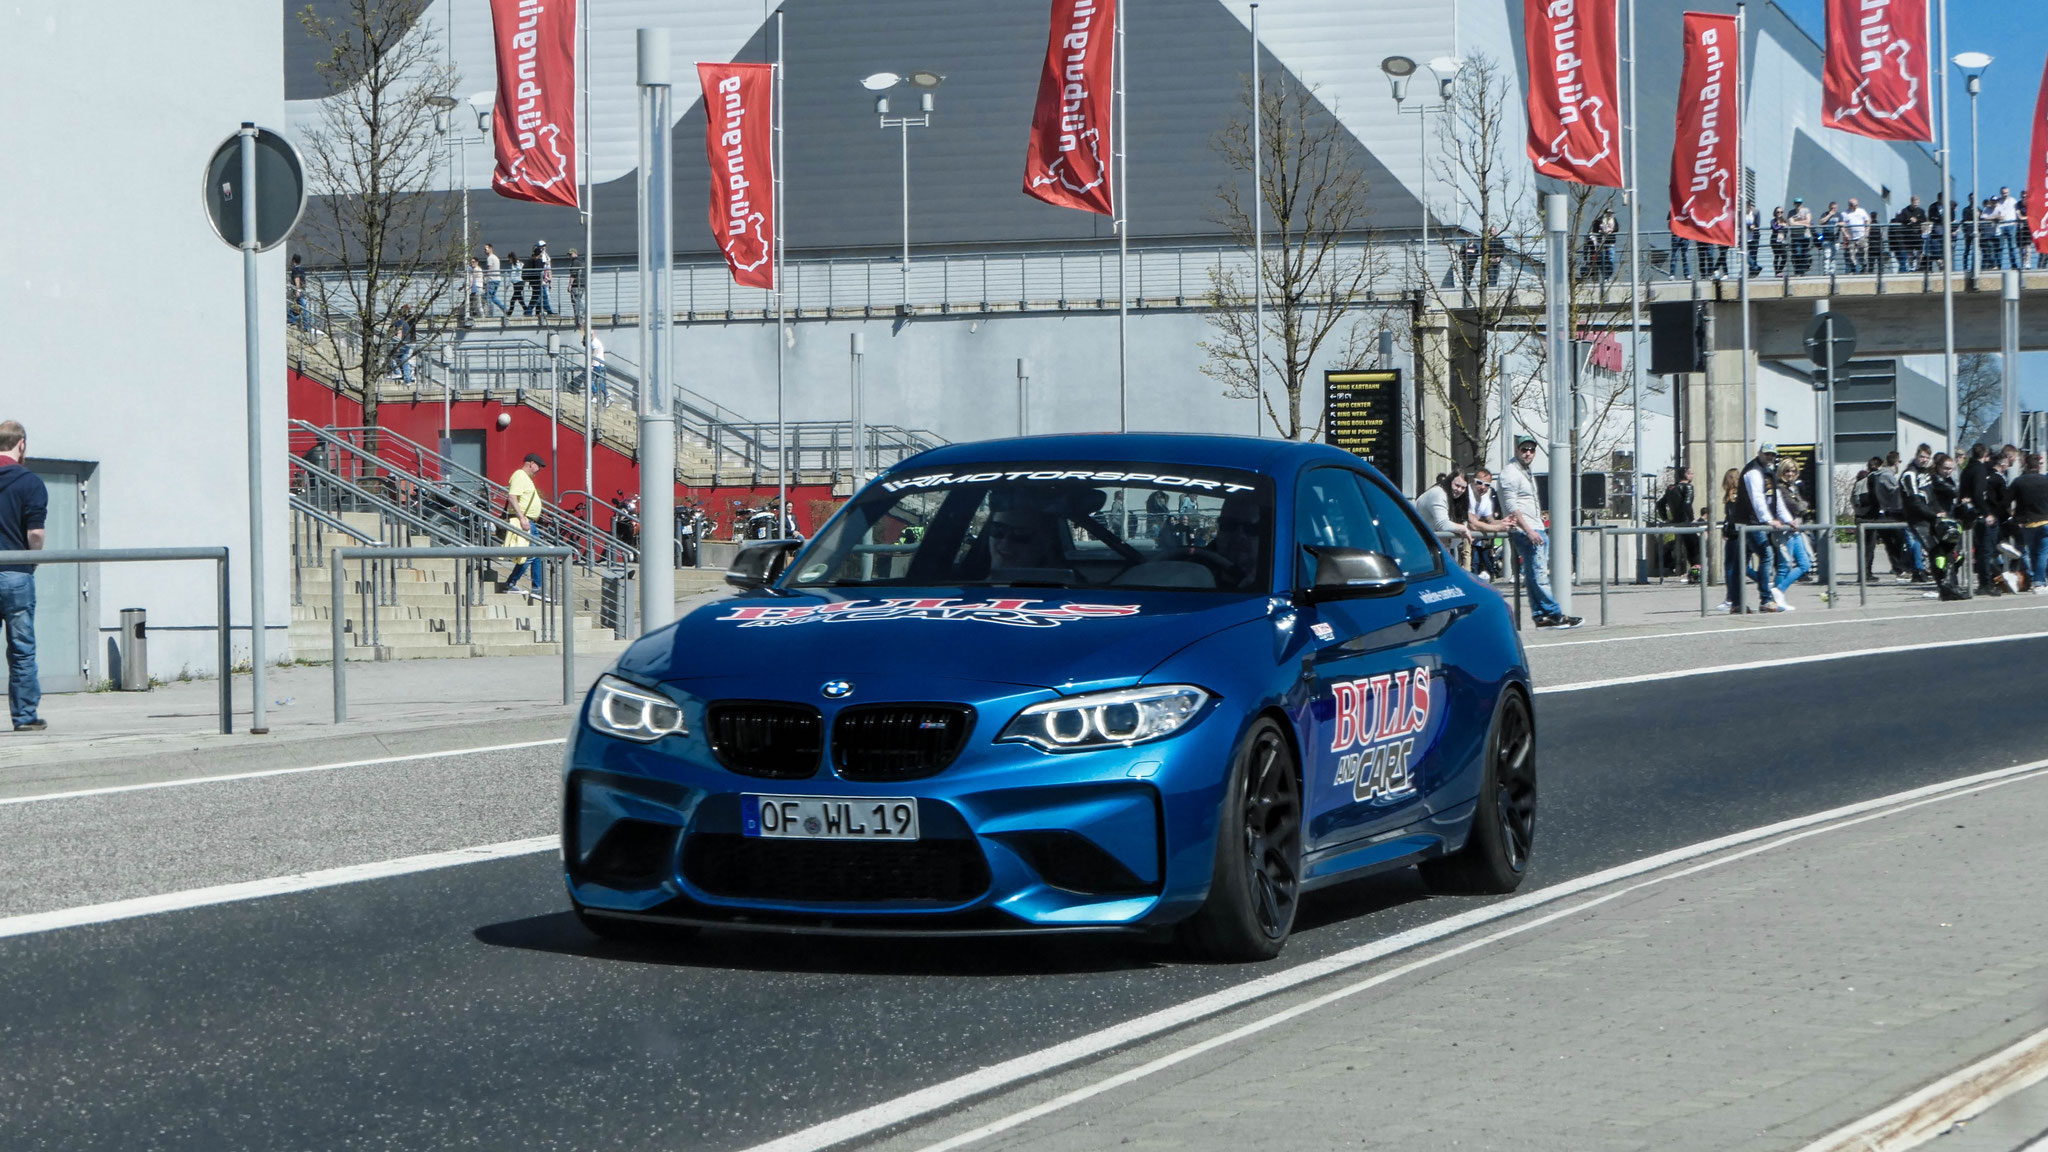 BMW M2 - OF-WL-19